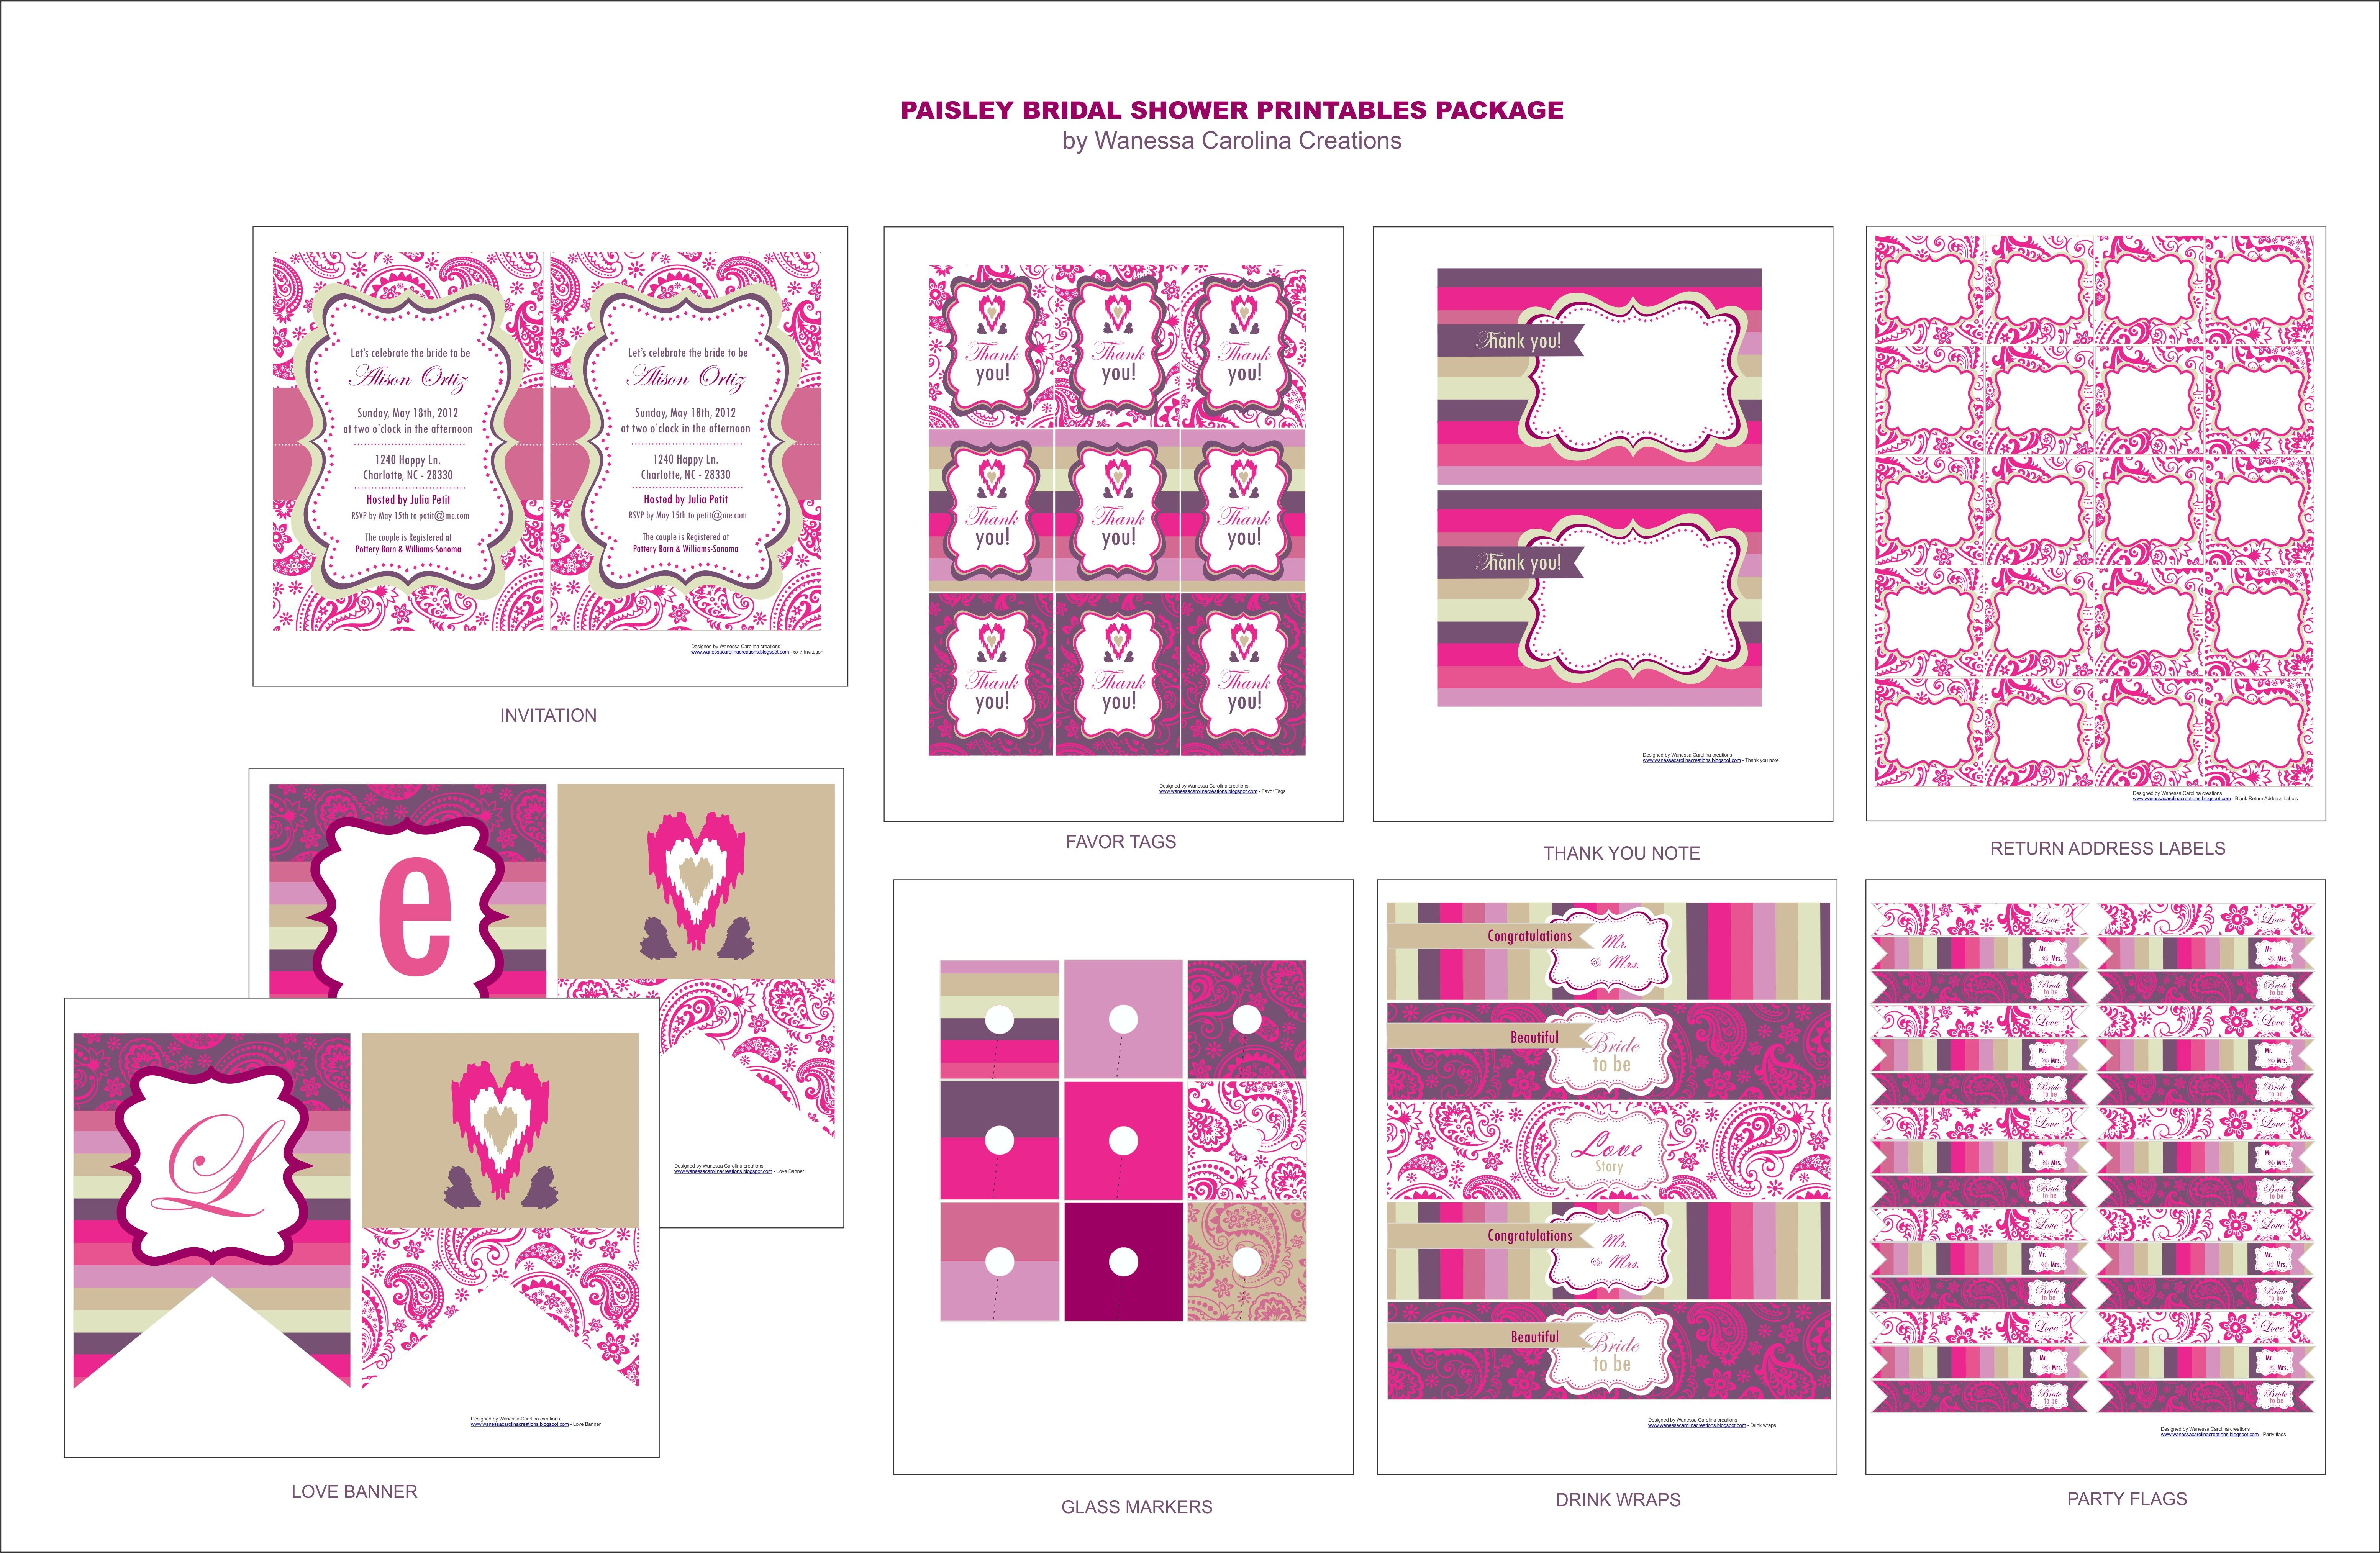 Free Bridal Shower Printables From Wanessa Carolina Creations Inside Free Bridal Shower Banner Template